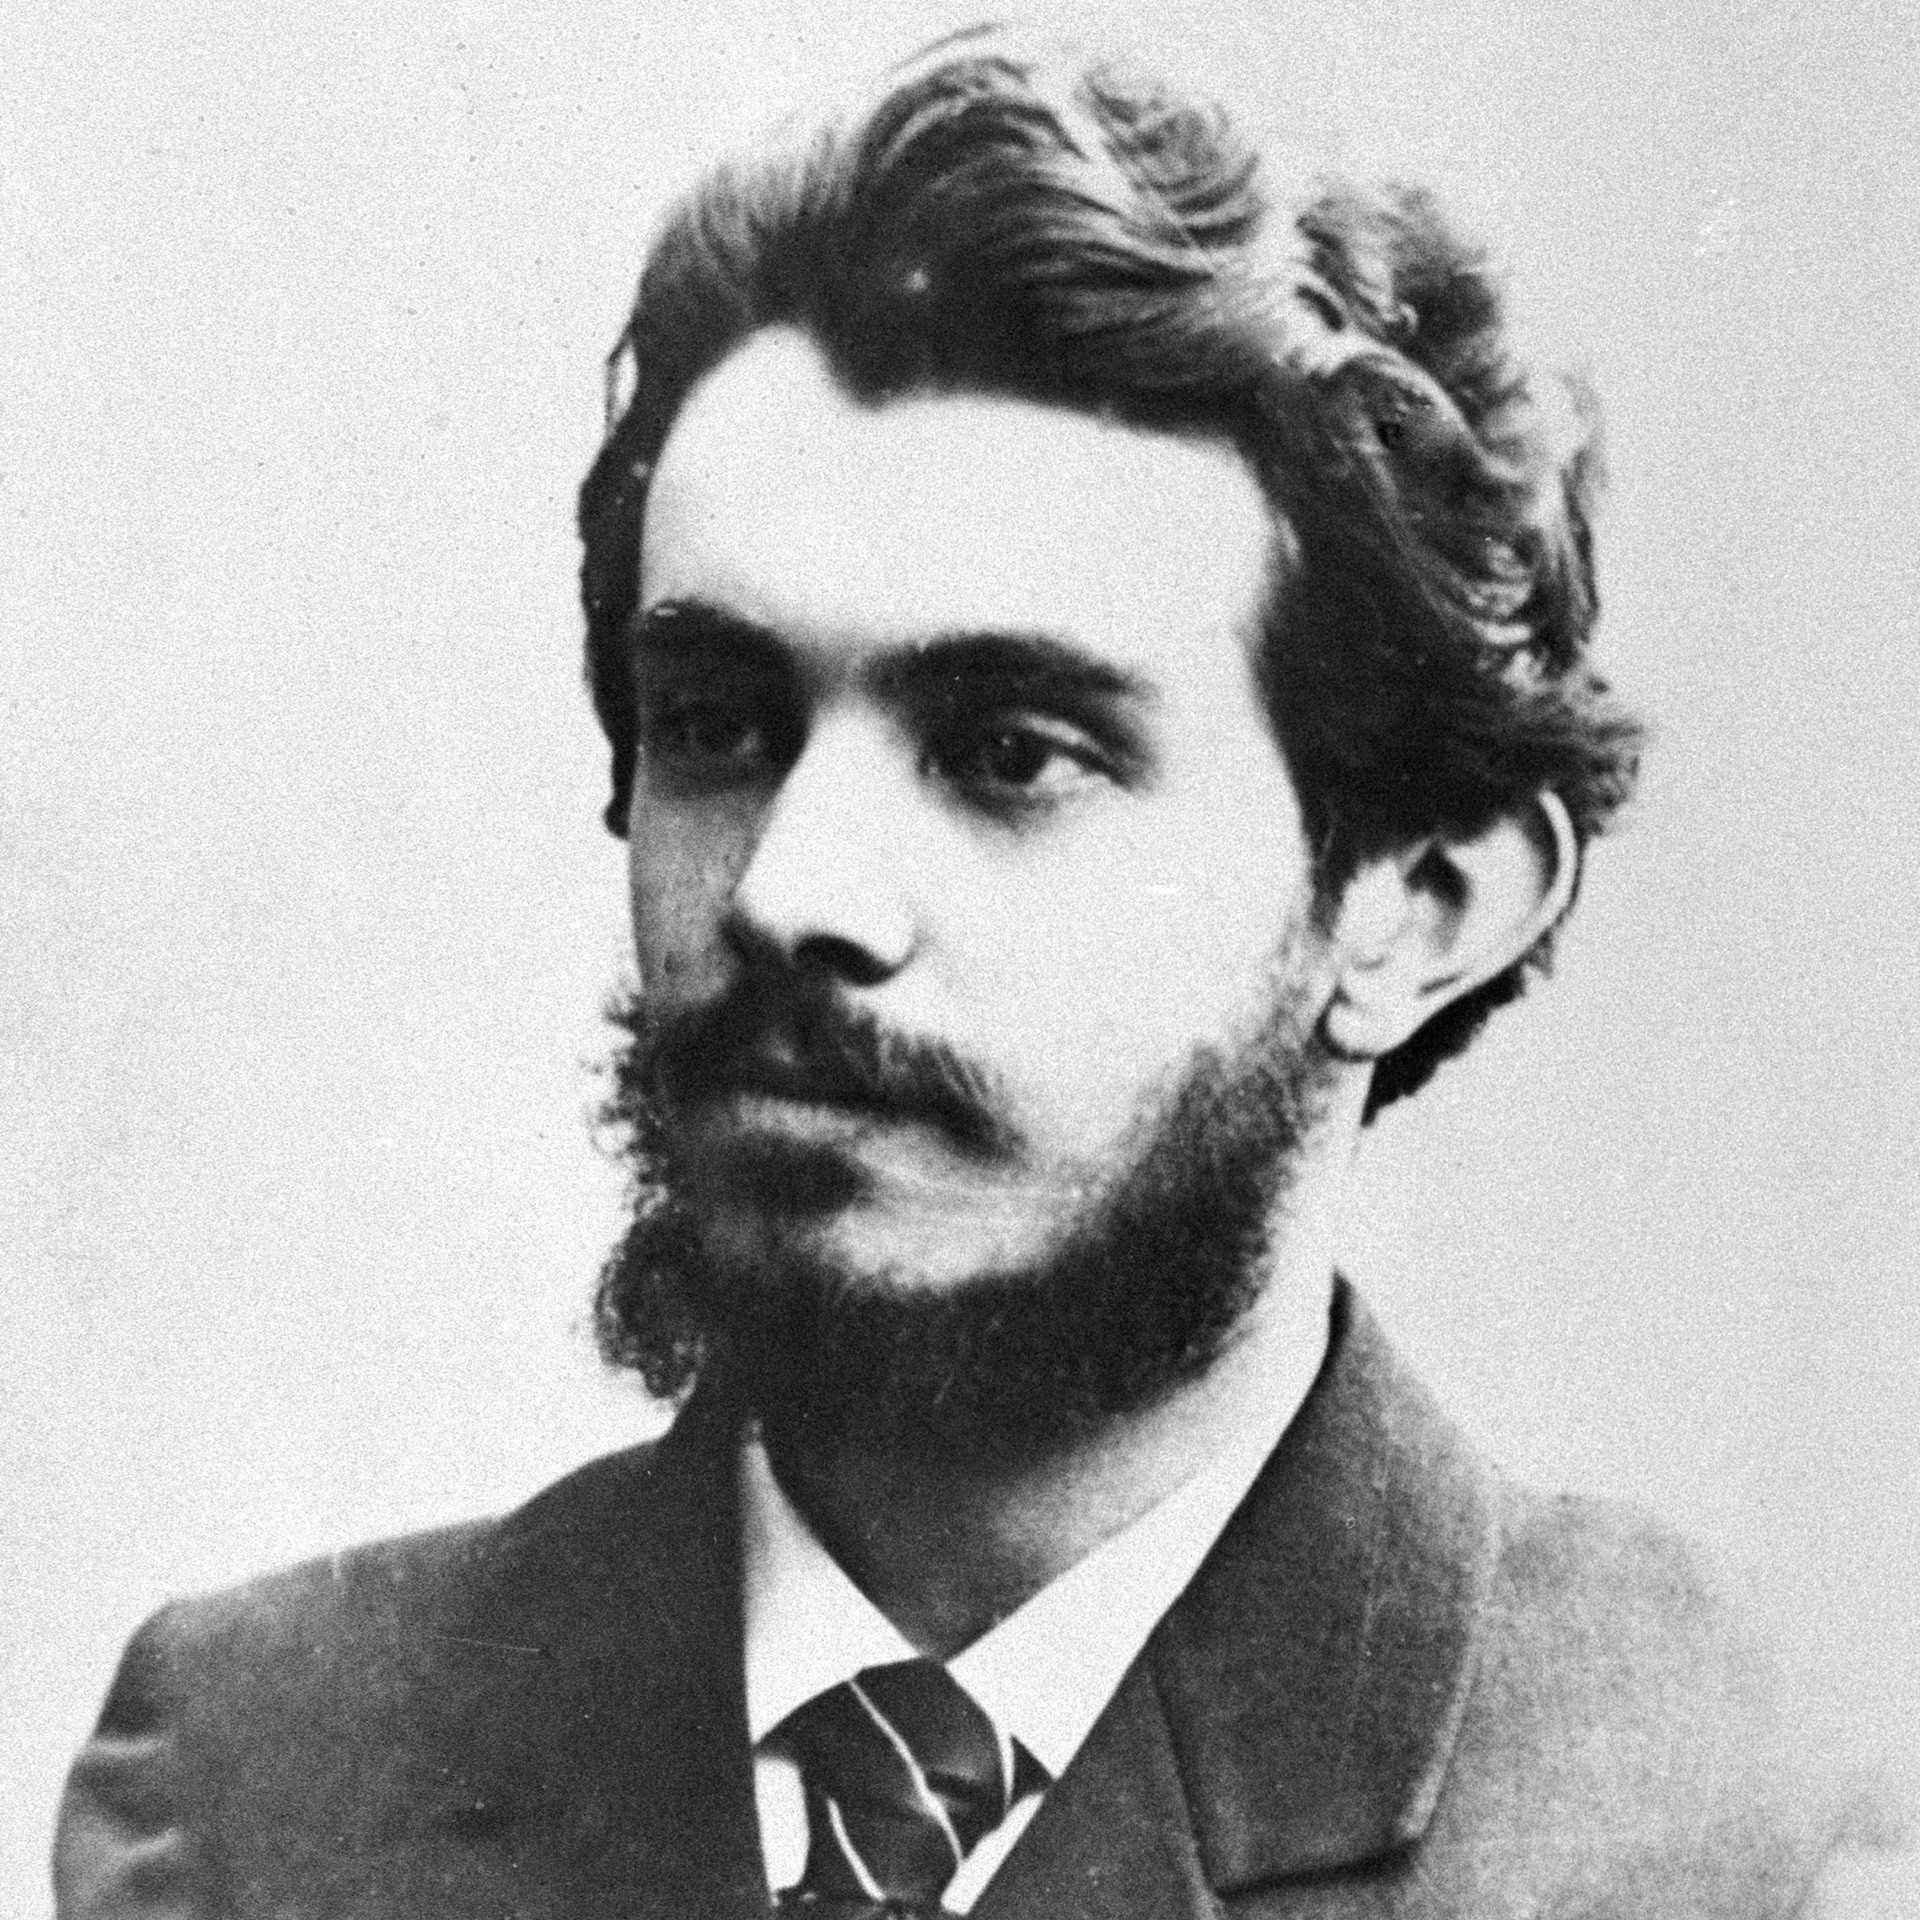 A profound philosopher, Nikolai Berdyaev had some serious contradictions with the Bolsheviks - so he had to escape the country, for these people were harsh on those challenging their ideals.